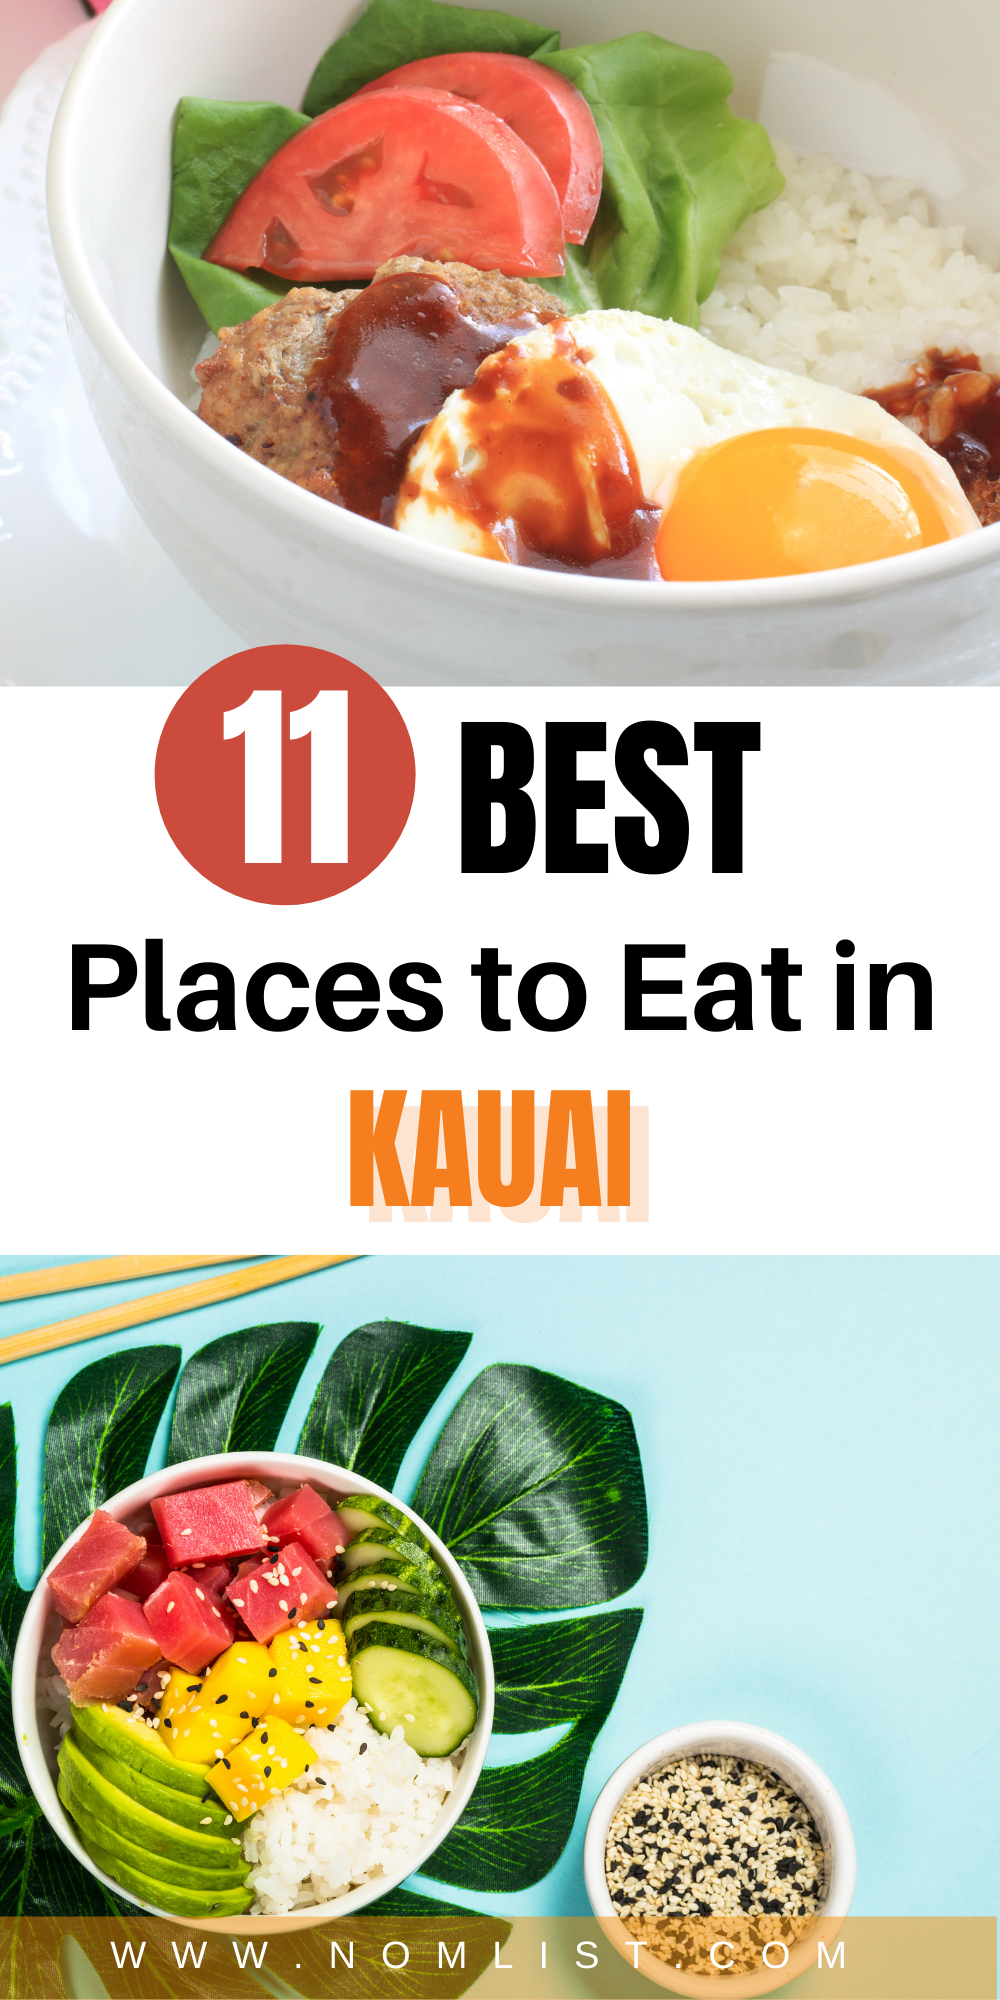 Many of these local restaurants below feature delicious plate lunches! Here is our list of the 11 top local places to eat in Kauai!